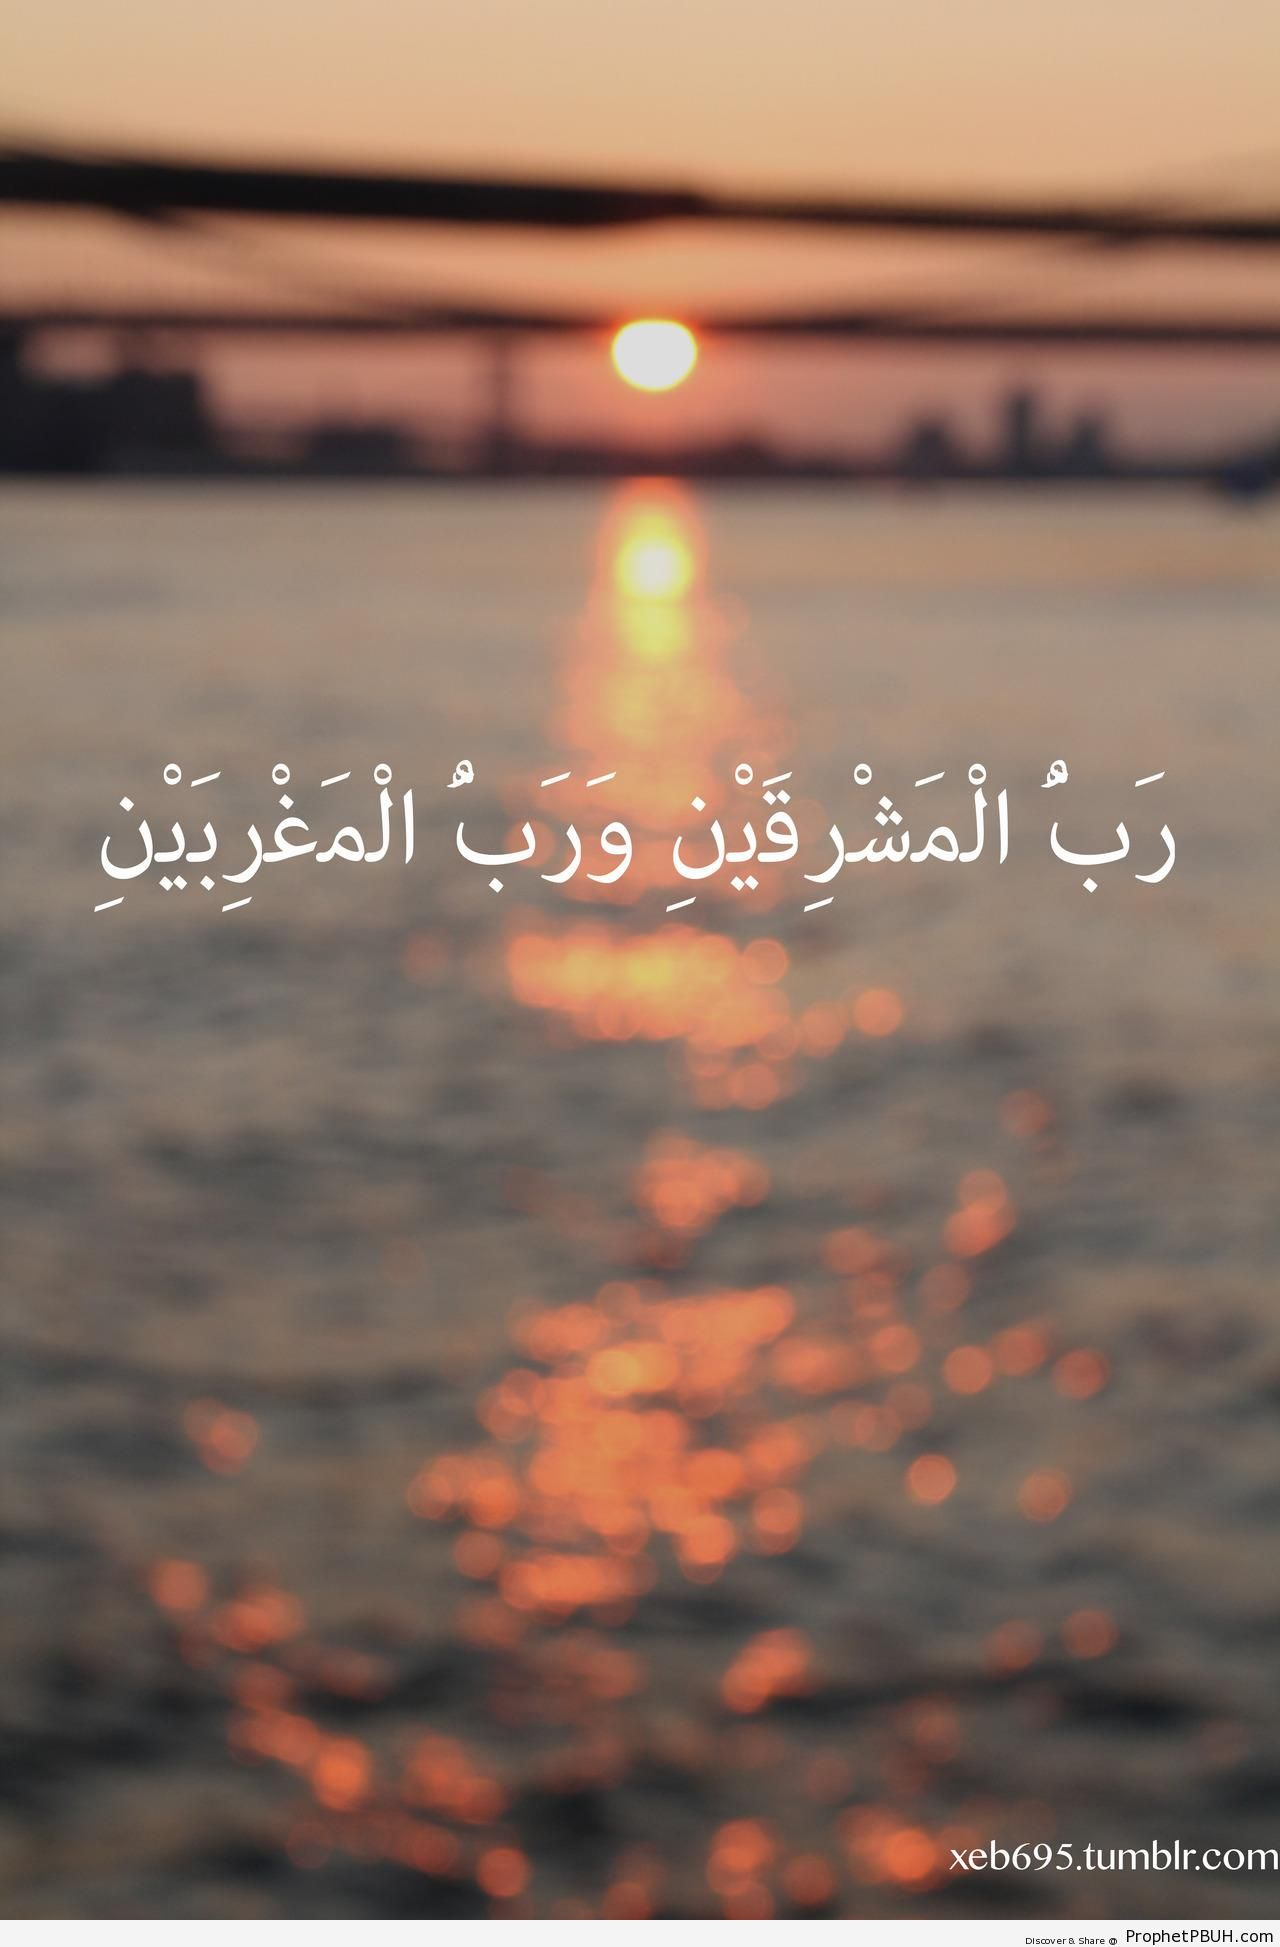 Sunrise and Sunset (Quran 55-17; Surat ar-Rahman) - Photos